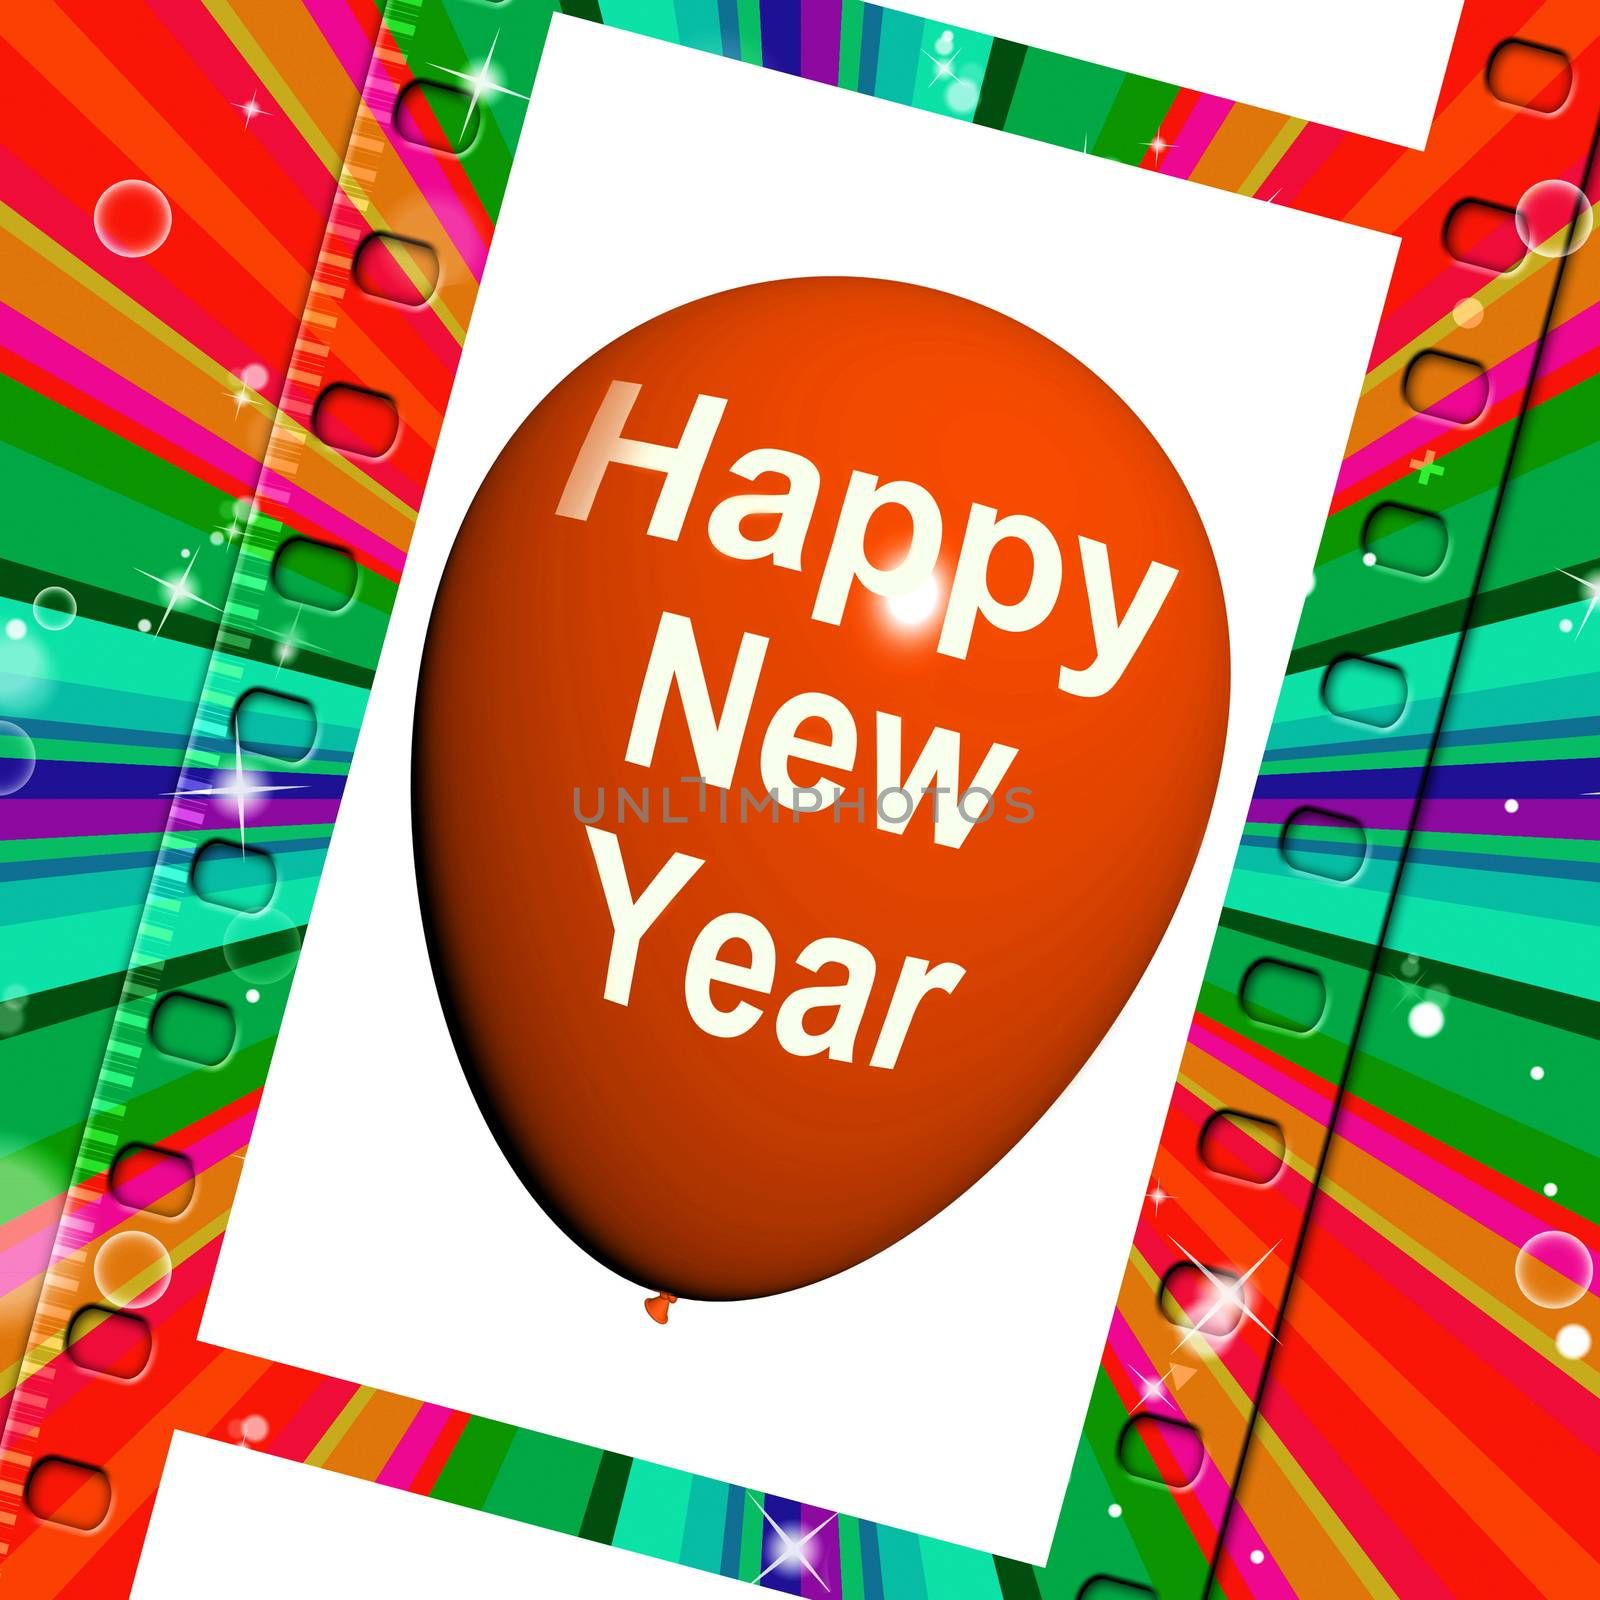 Happy New Year Balloon Showing Parties and Celebrations